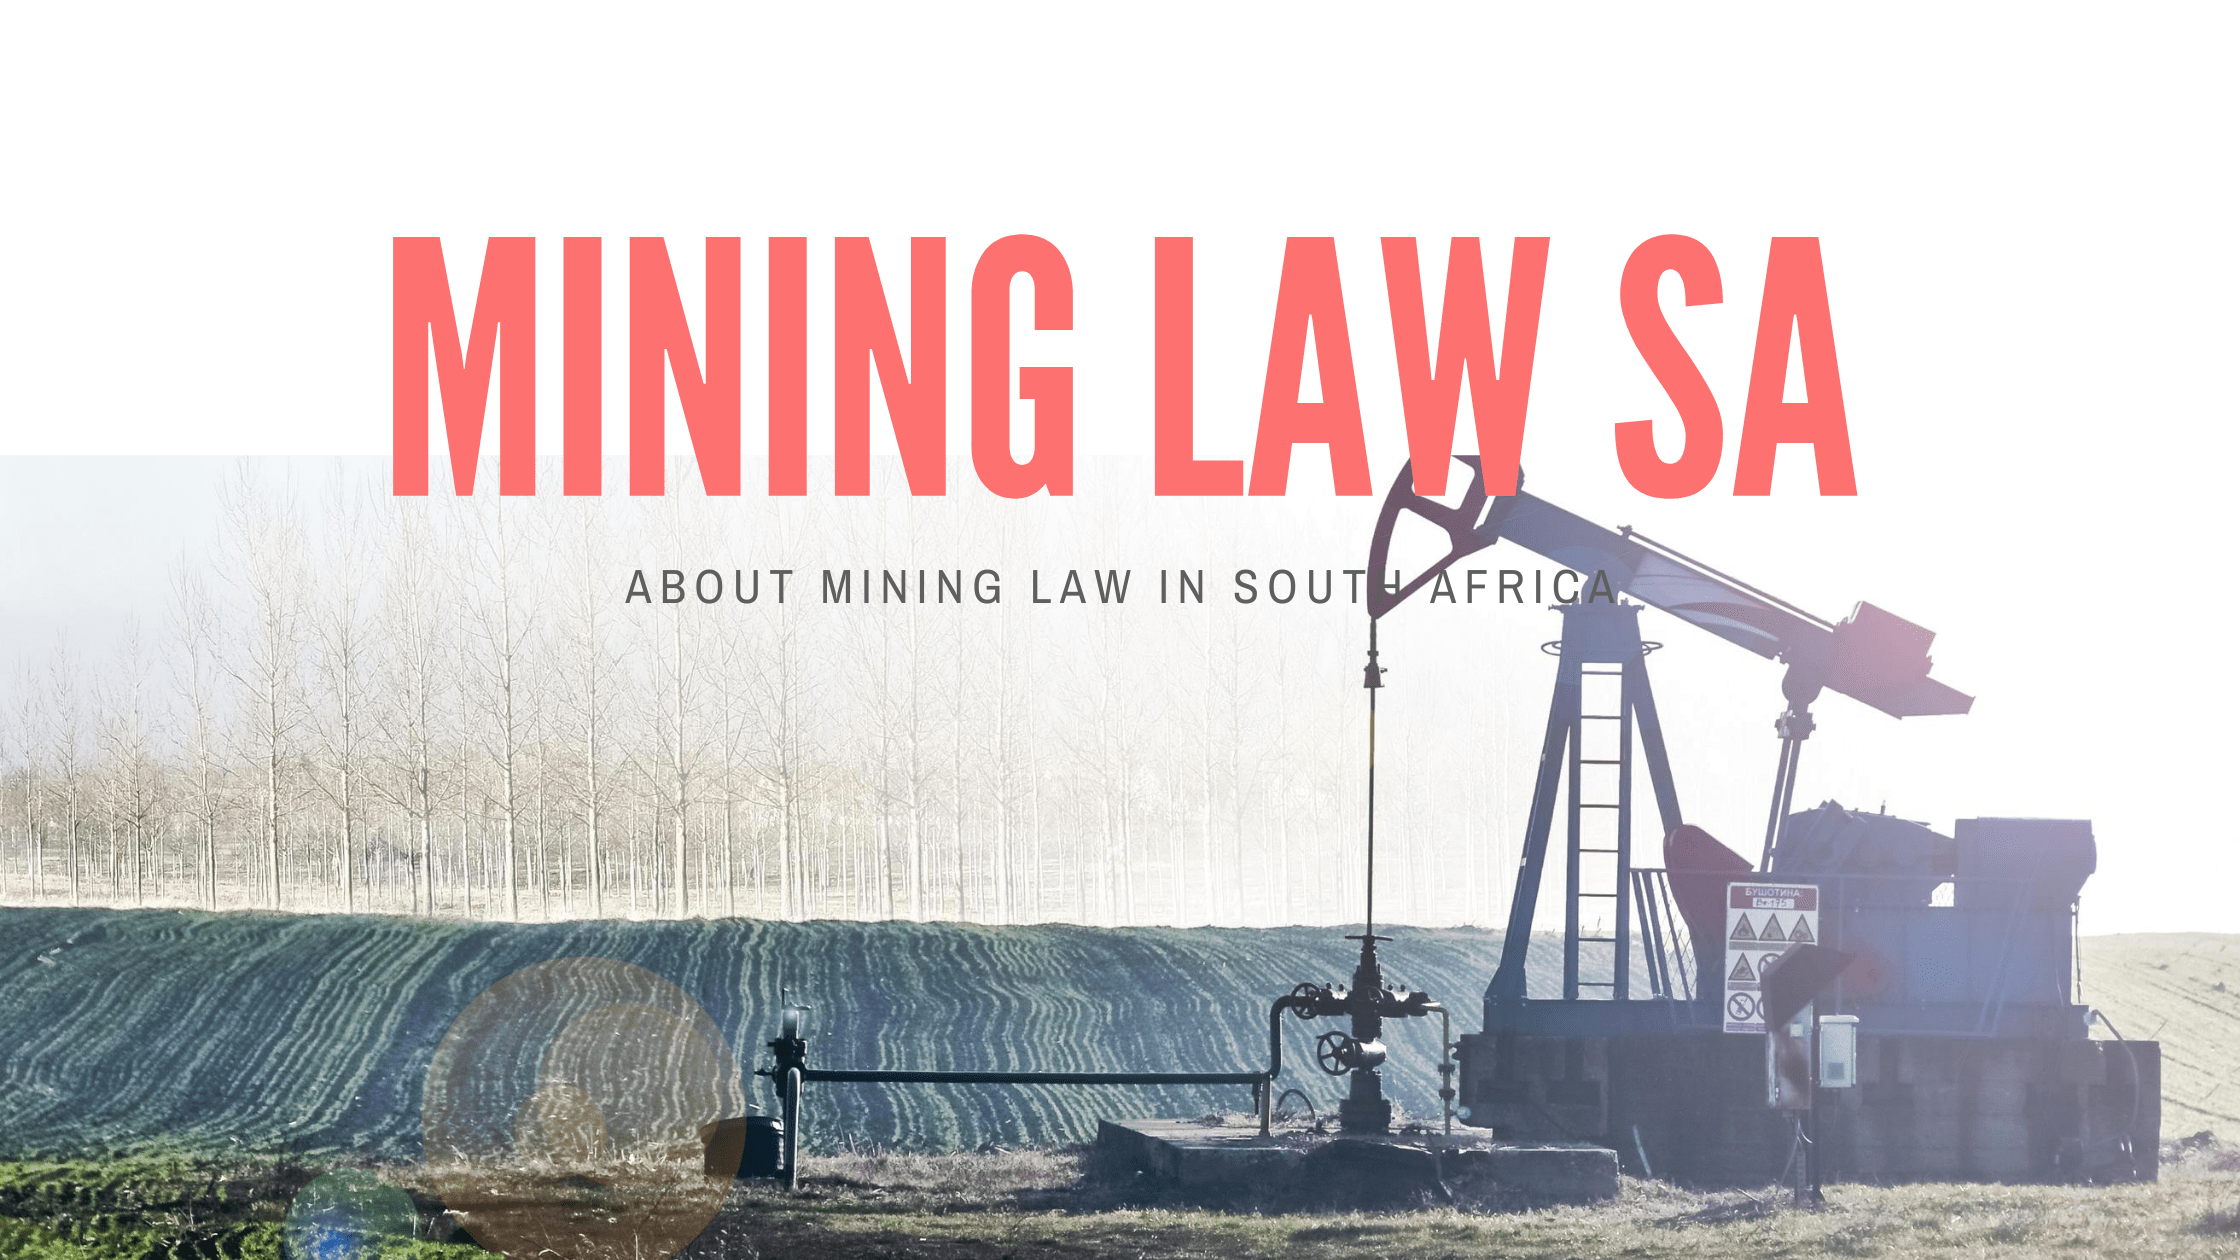 Mining Law South Africa